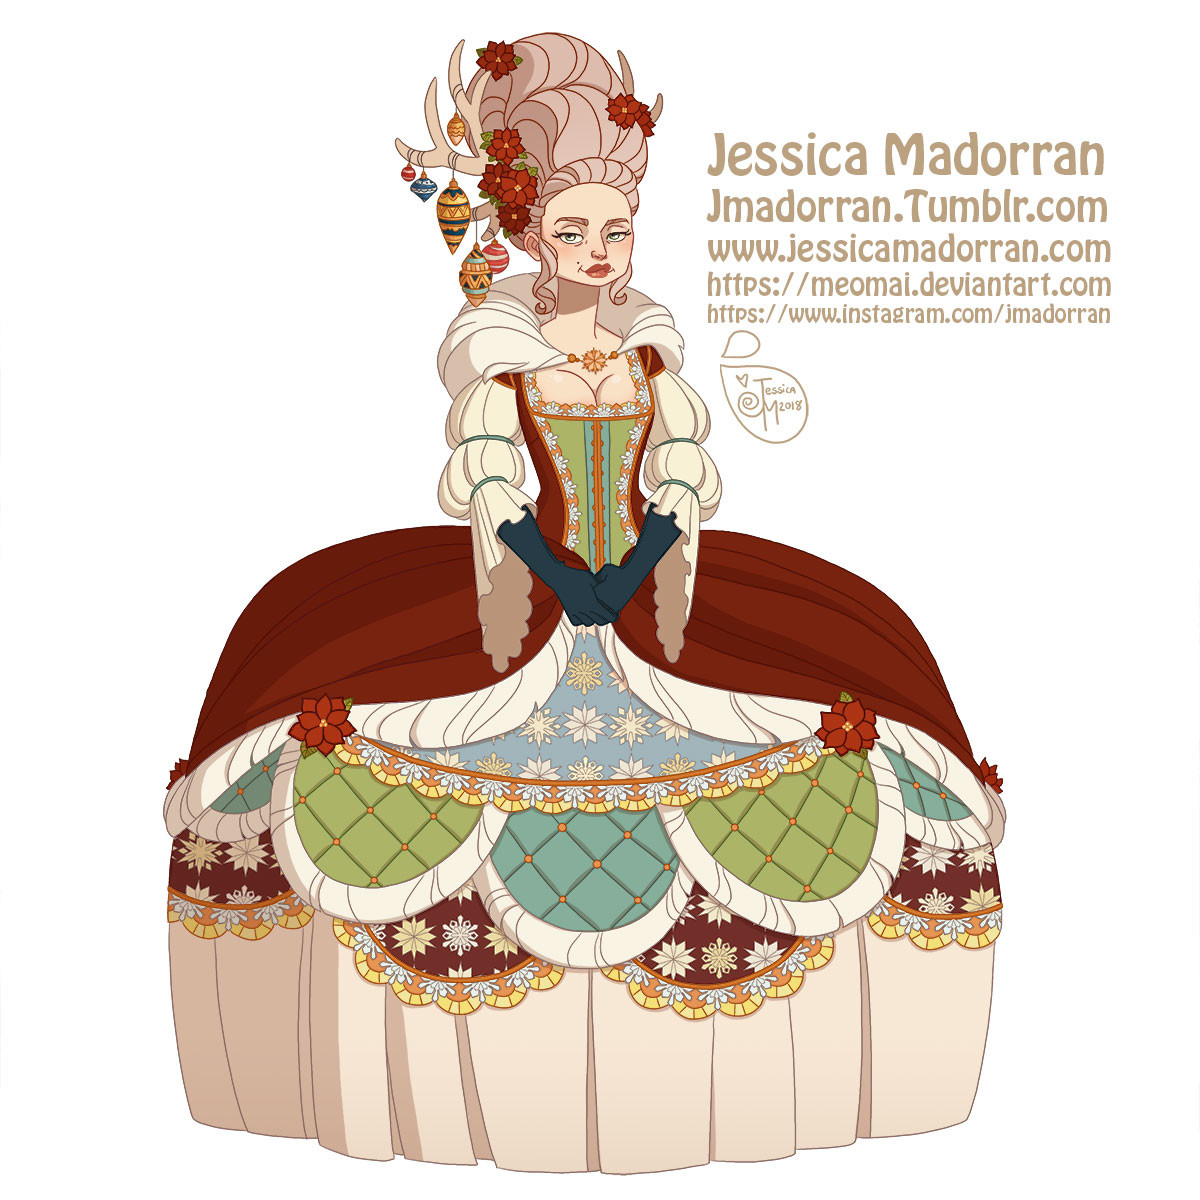 Jessica madorran character design paris 2018 versailles santa family individuals ms clause